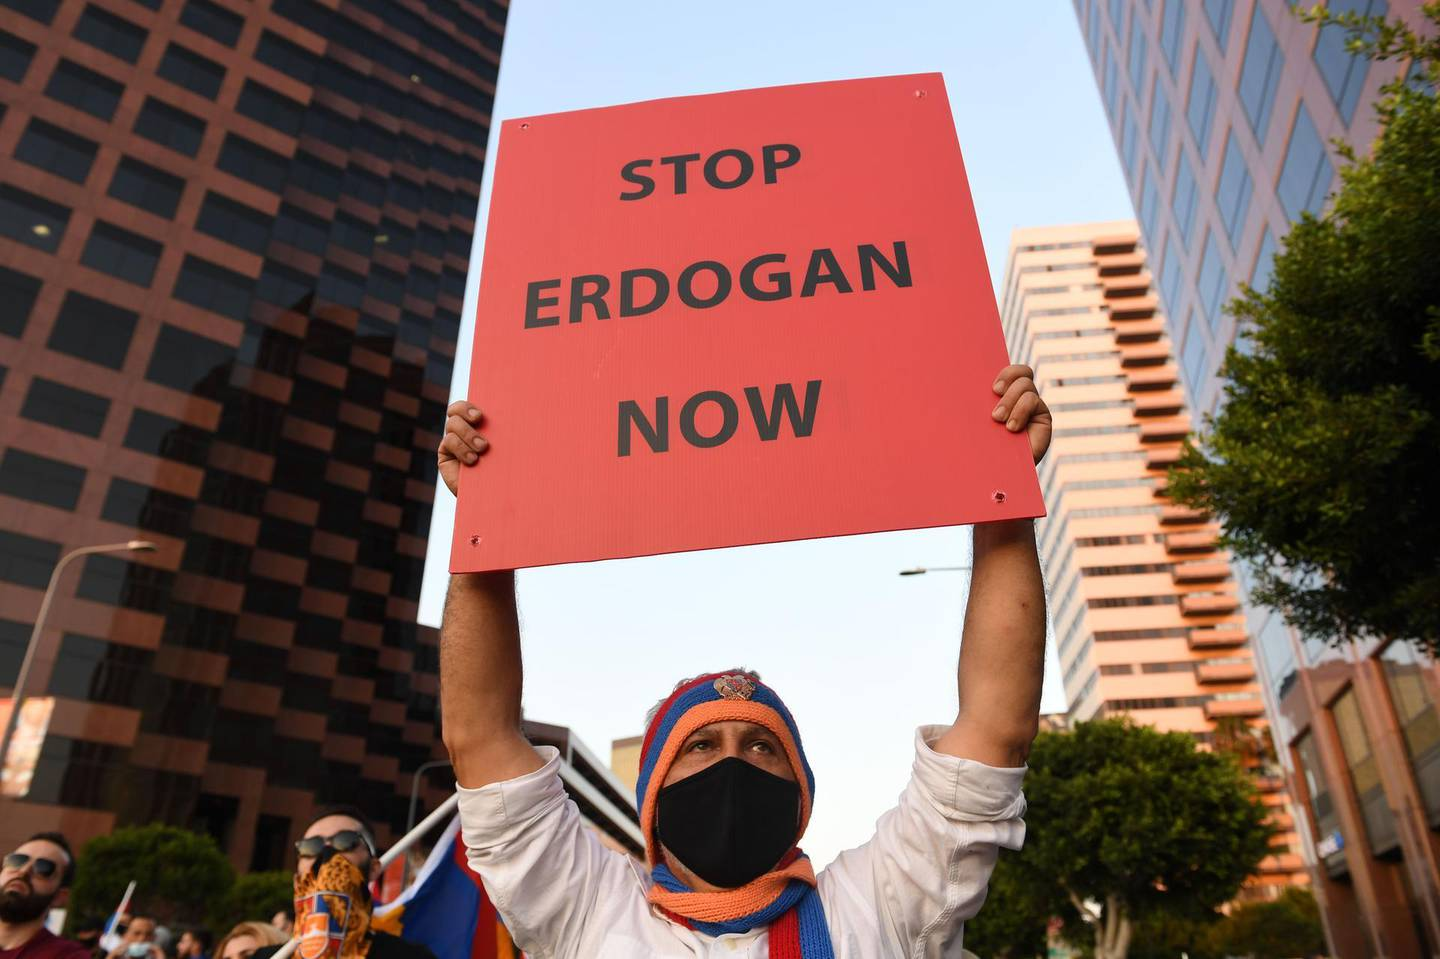 A man holds up a sign as he stands with members of the Armenian Youth Federation (AYF) during a protest outside the Azerbaijani Consulate General in Los Angeles on September 30, 2020 to protest what they call Azerbaijan's aggression against Armenia and Artsakh.  / AFP / VALERIE MACON